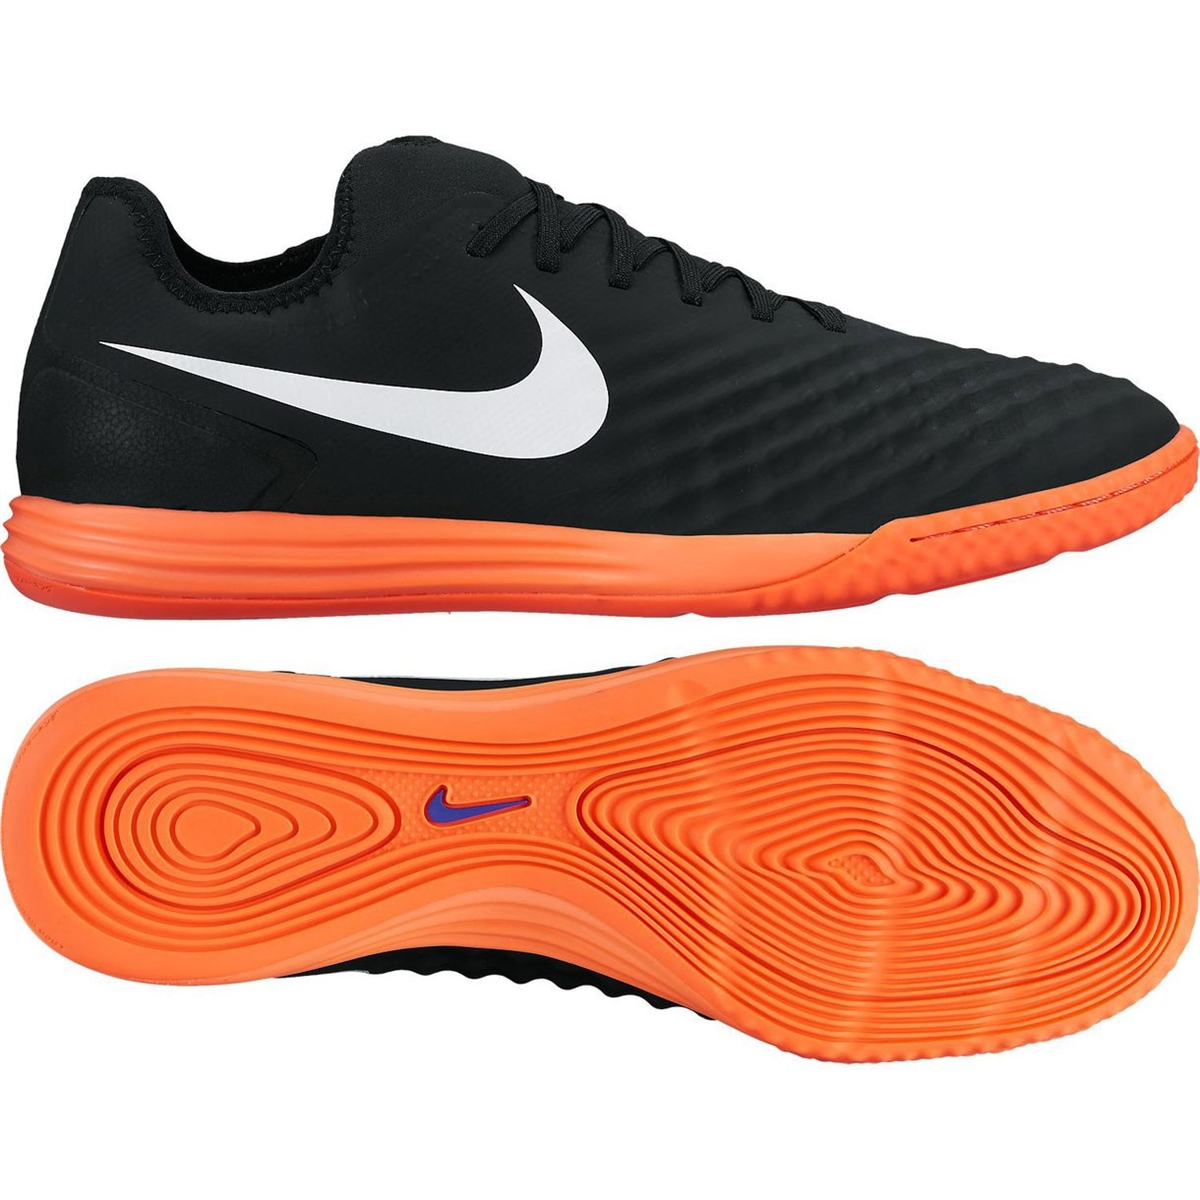 Nike MagistaX Finale II IC Indoor Soccer Shoes Black White Hyper Orange